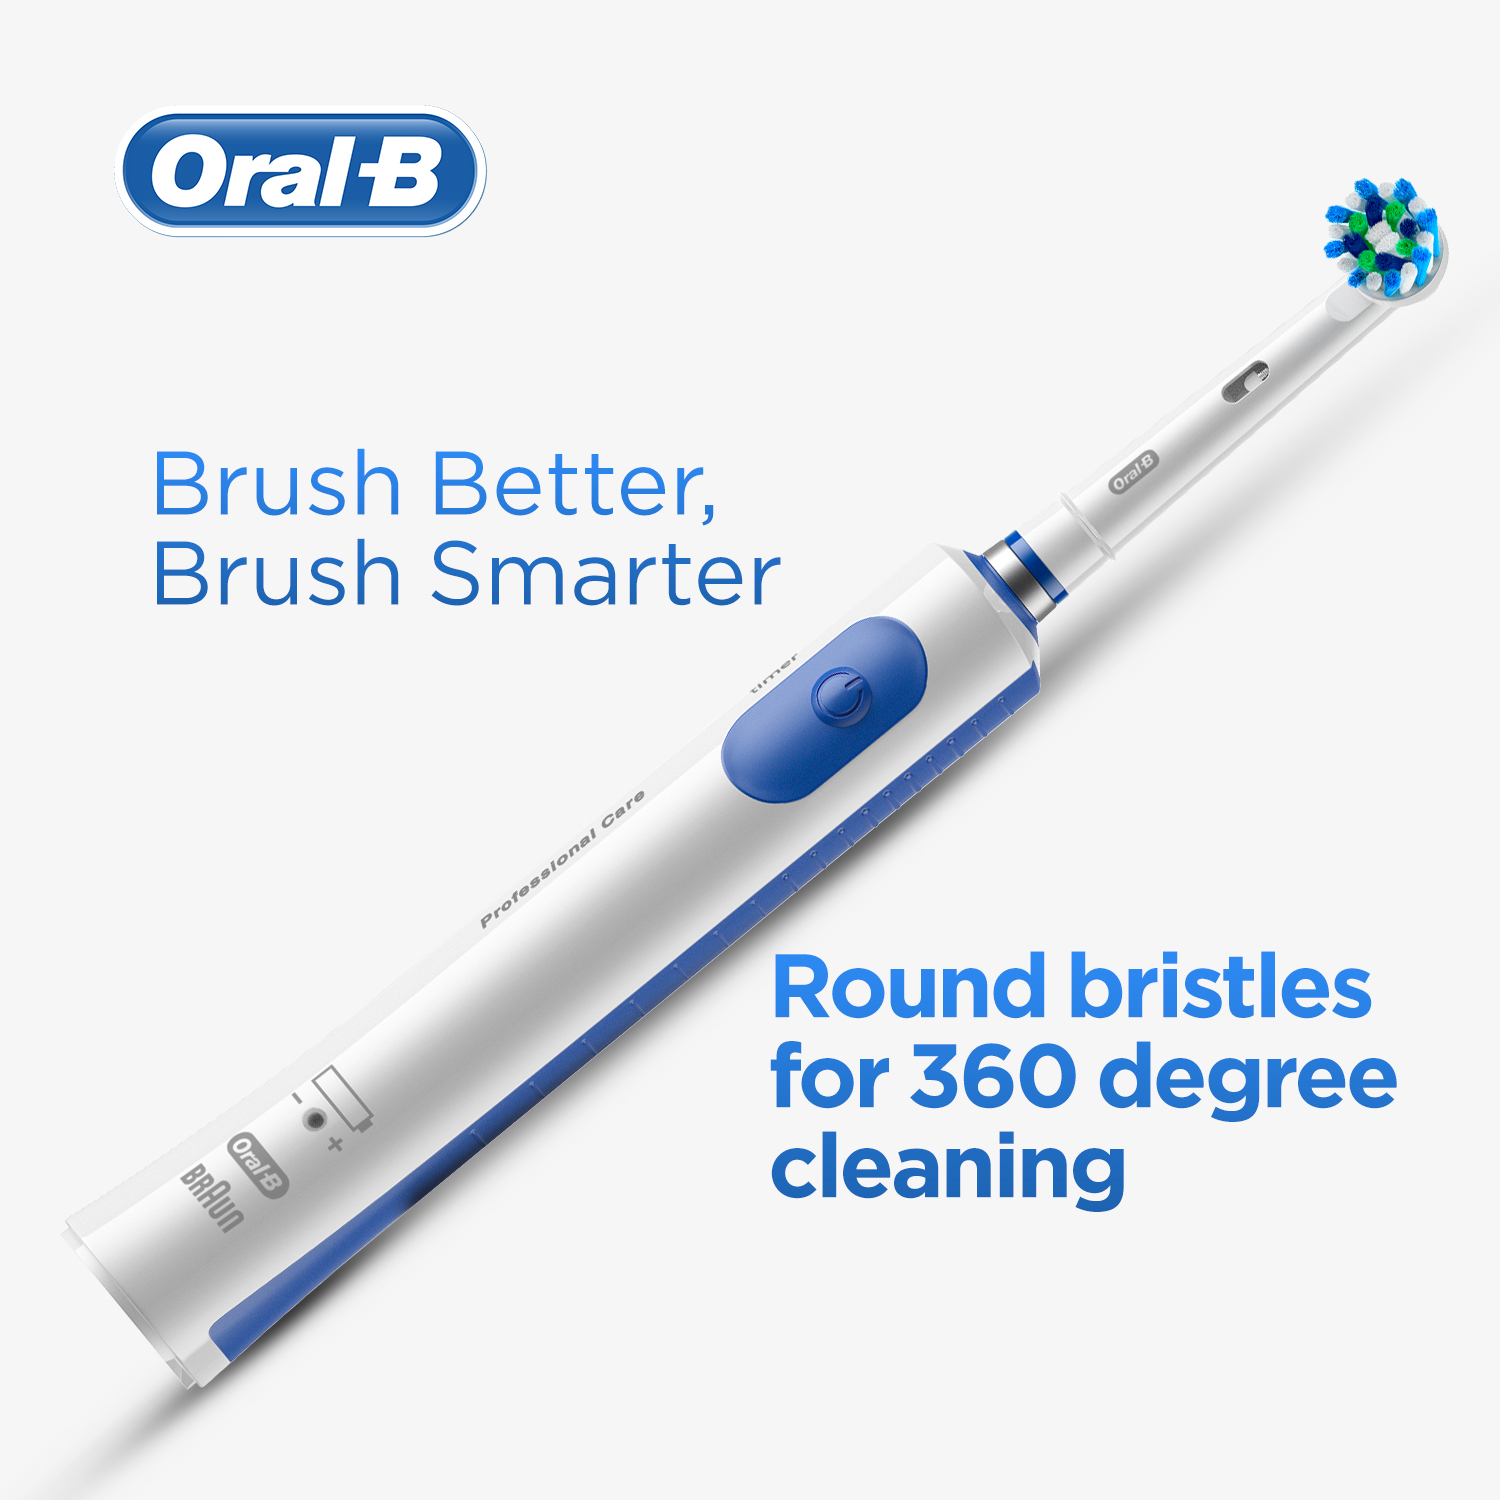 Oral-B Pro 600 Electric Toothbrush with Cross Action Bristles, Rechargeable